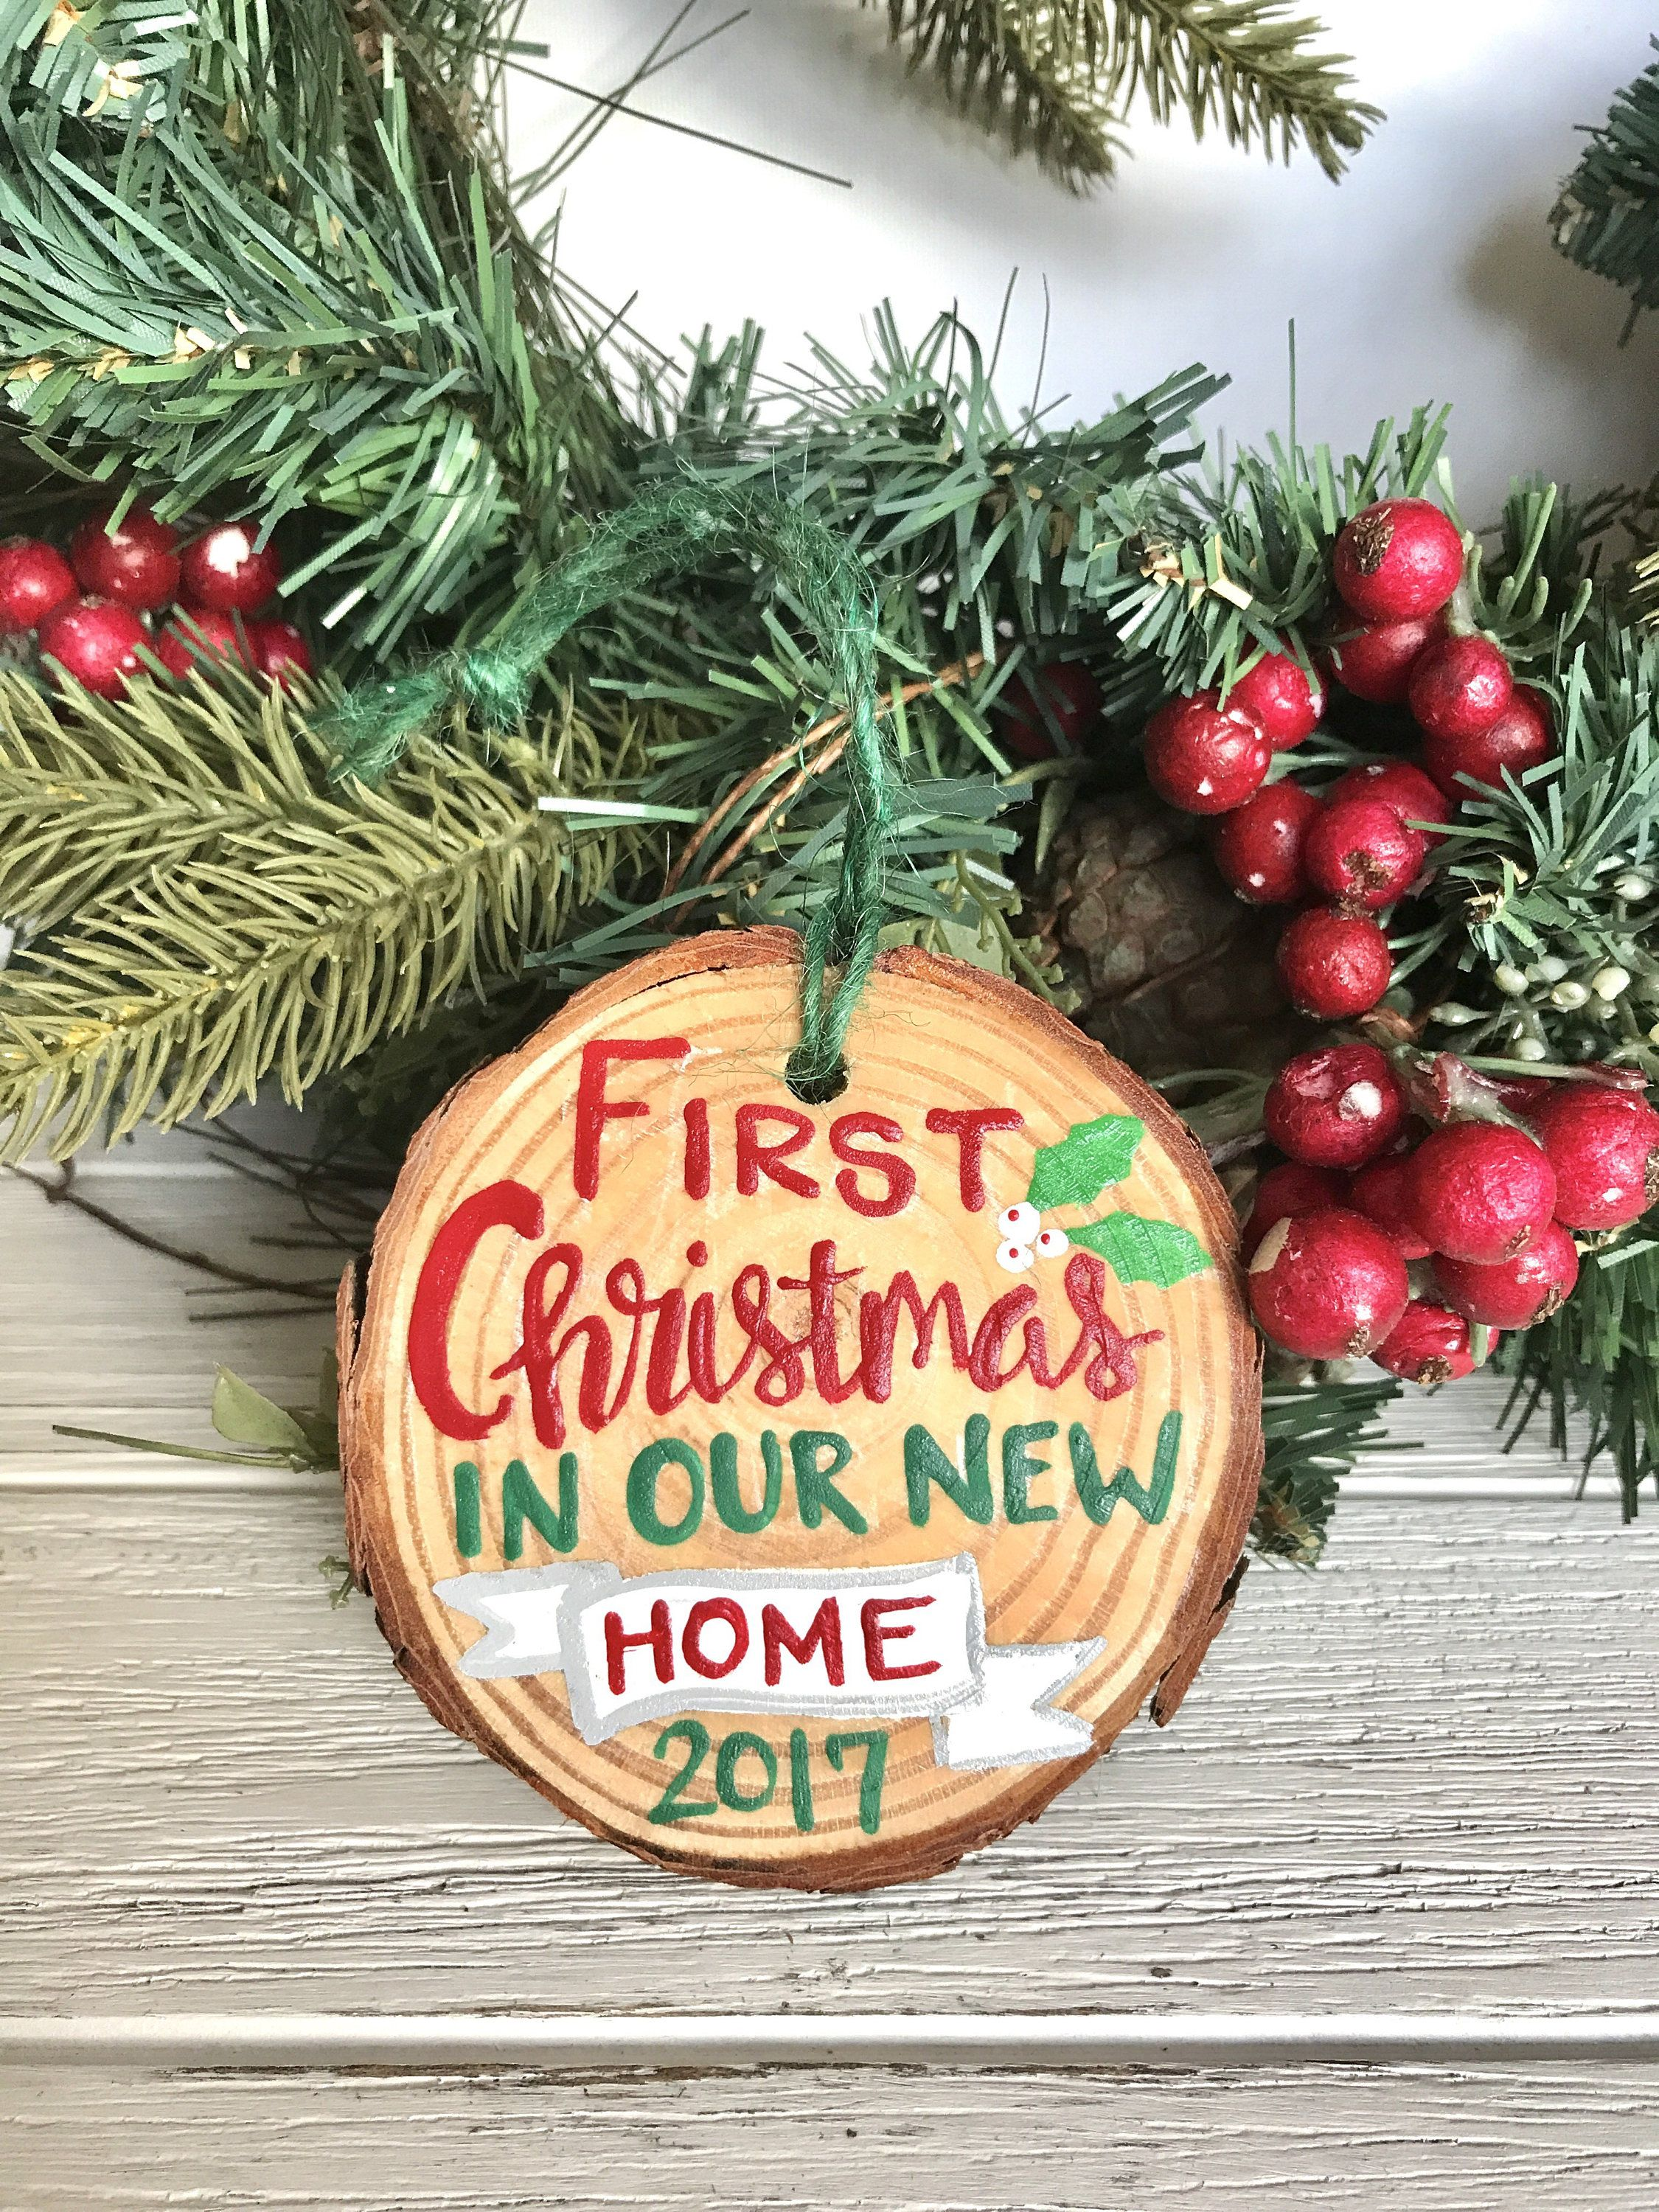 First Christmas In Our New Home Wood Slice Ornament 2019 New Etsy Painted Christmas Ornaments Wood Slice Ornament Painted Ornaments